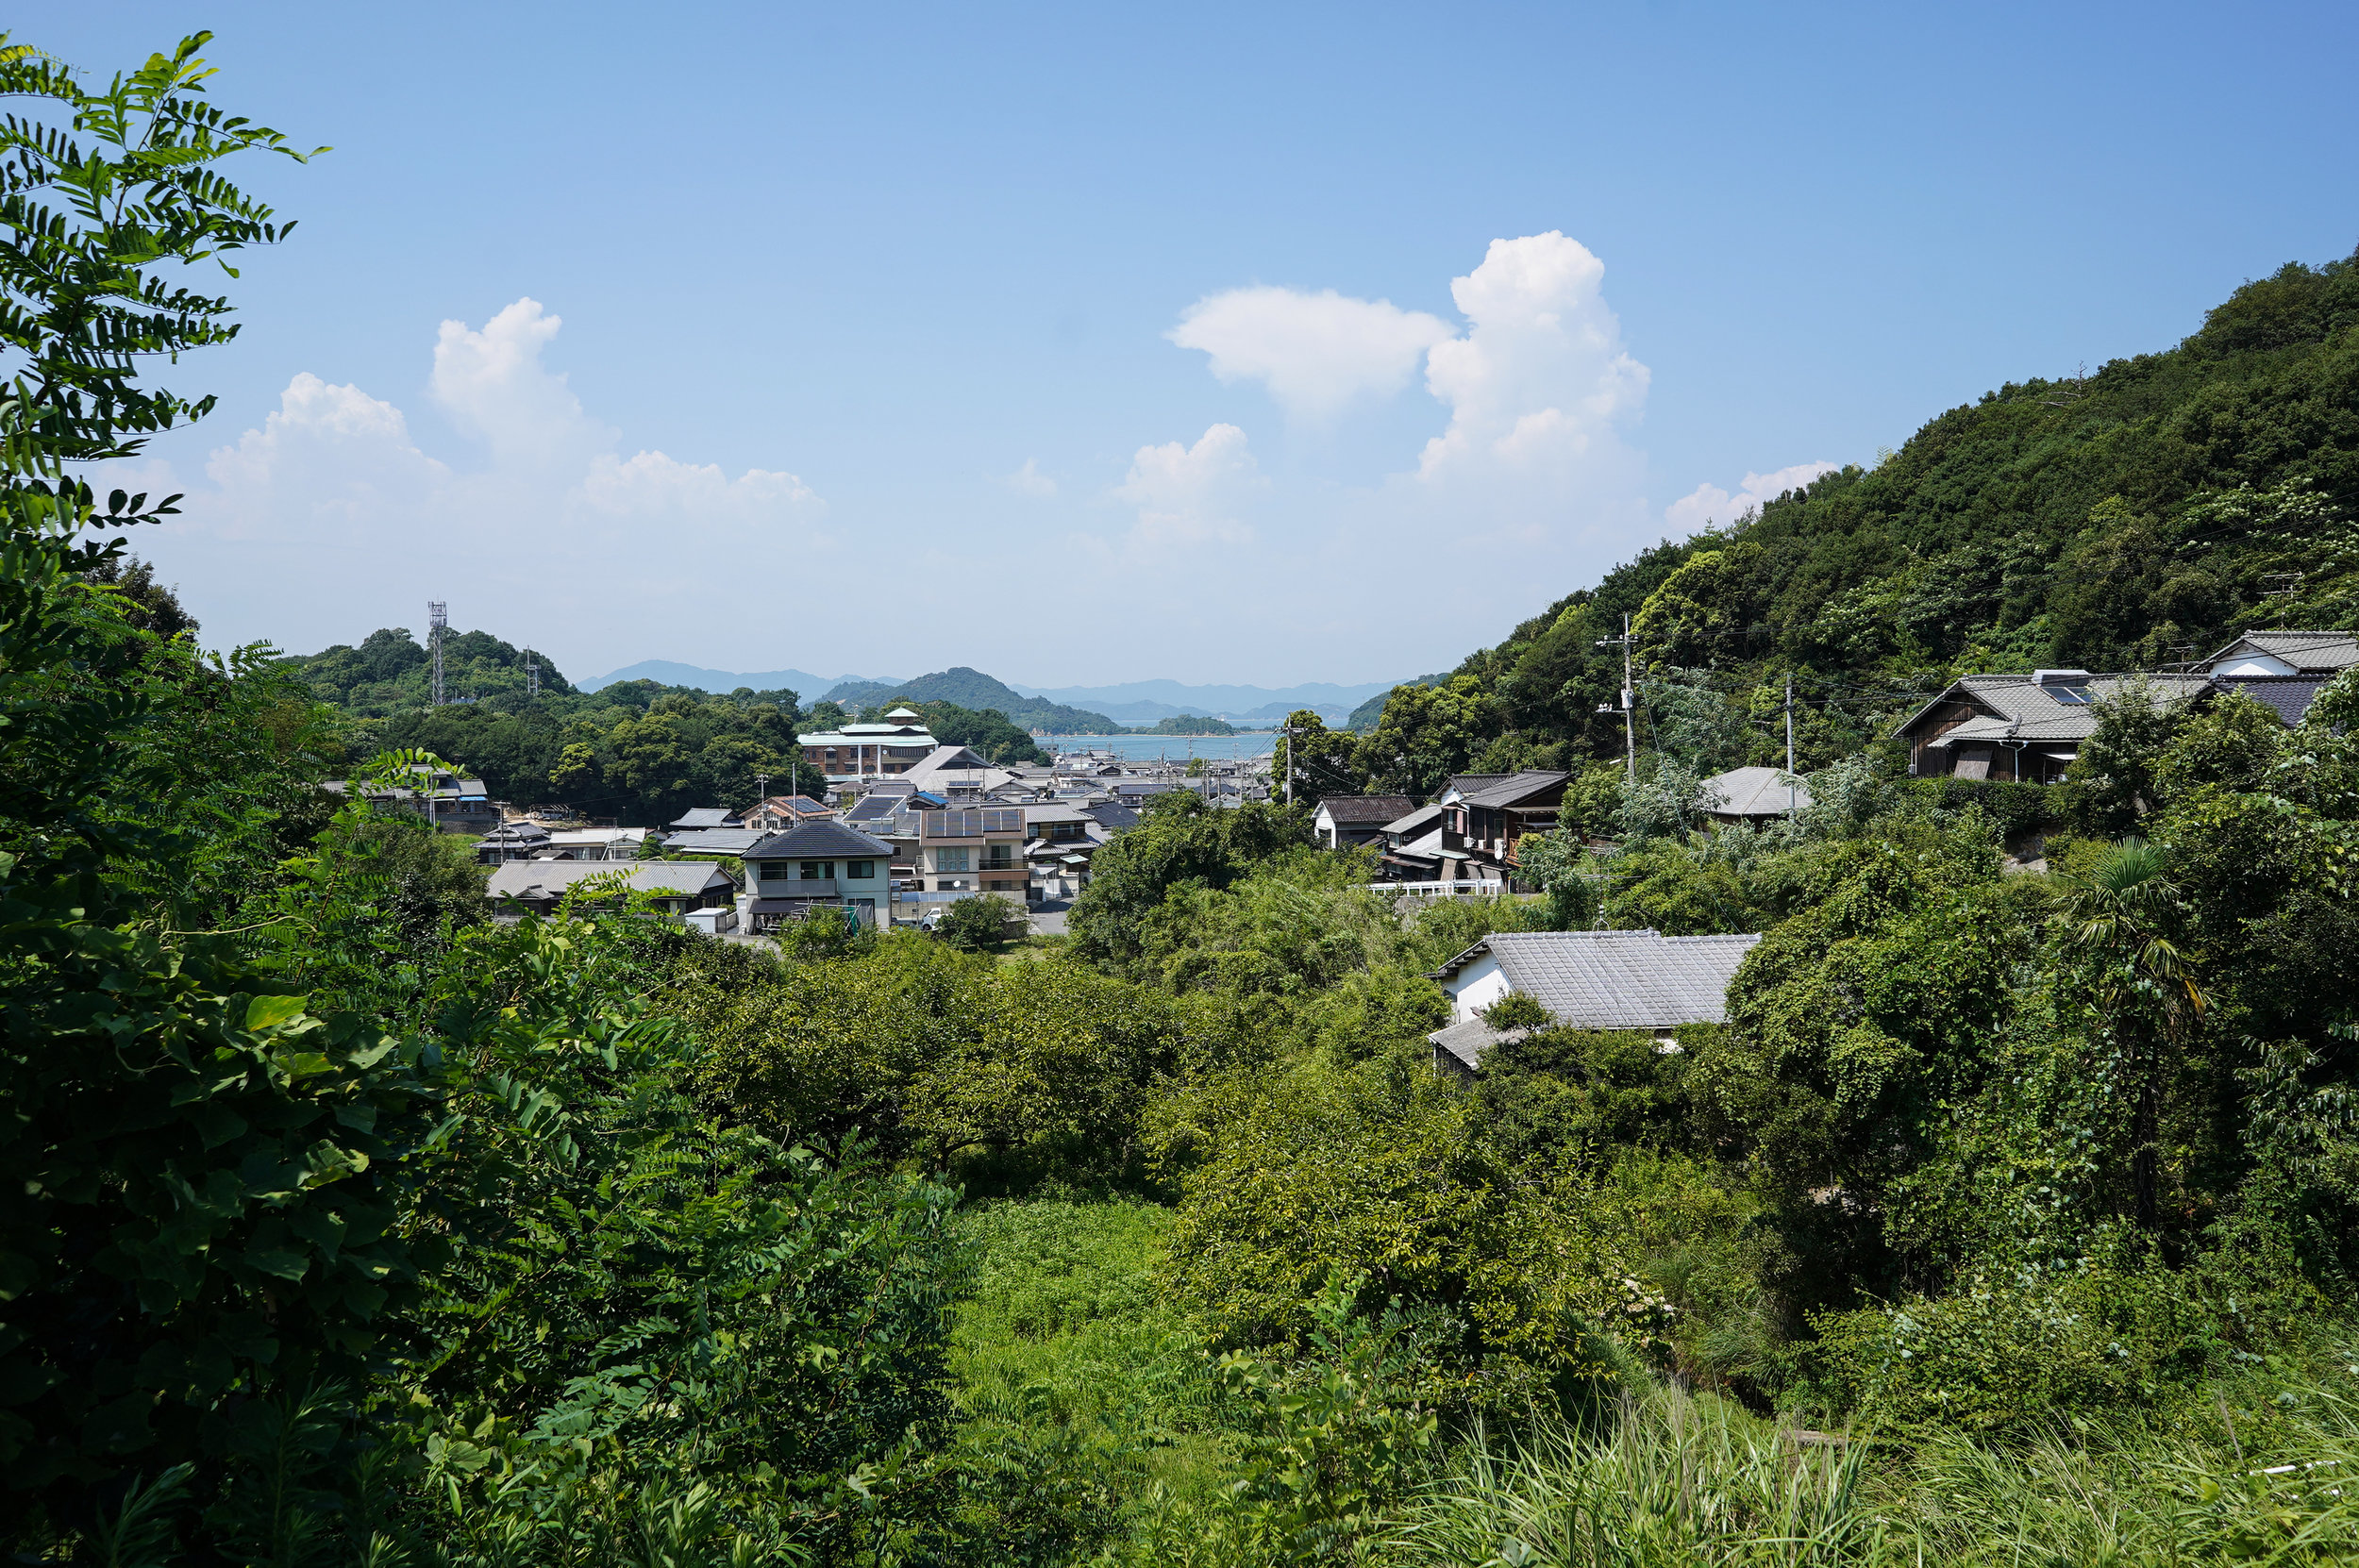 The village of Honmura on Naoshima.